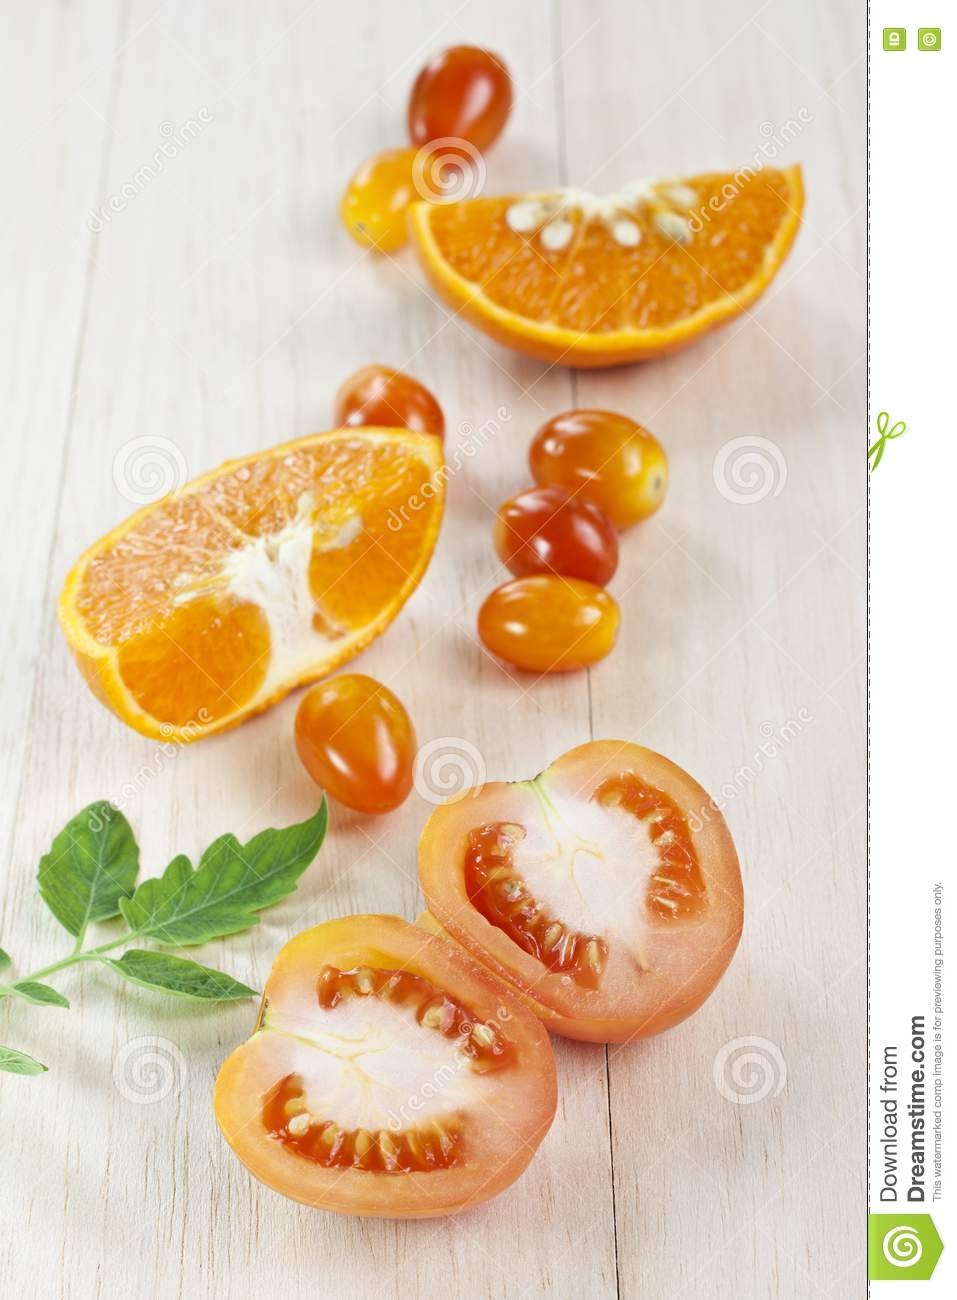 fruit orange is a tomato a fruit or a vegetable